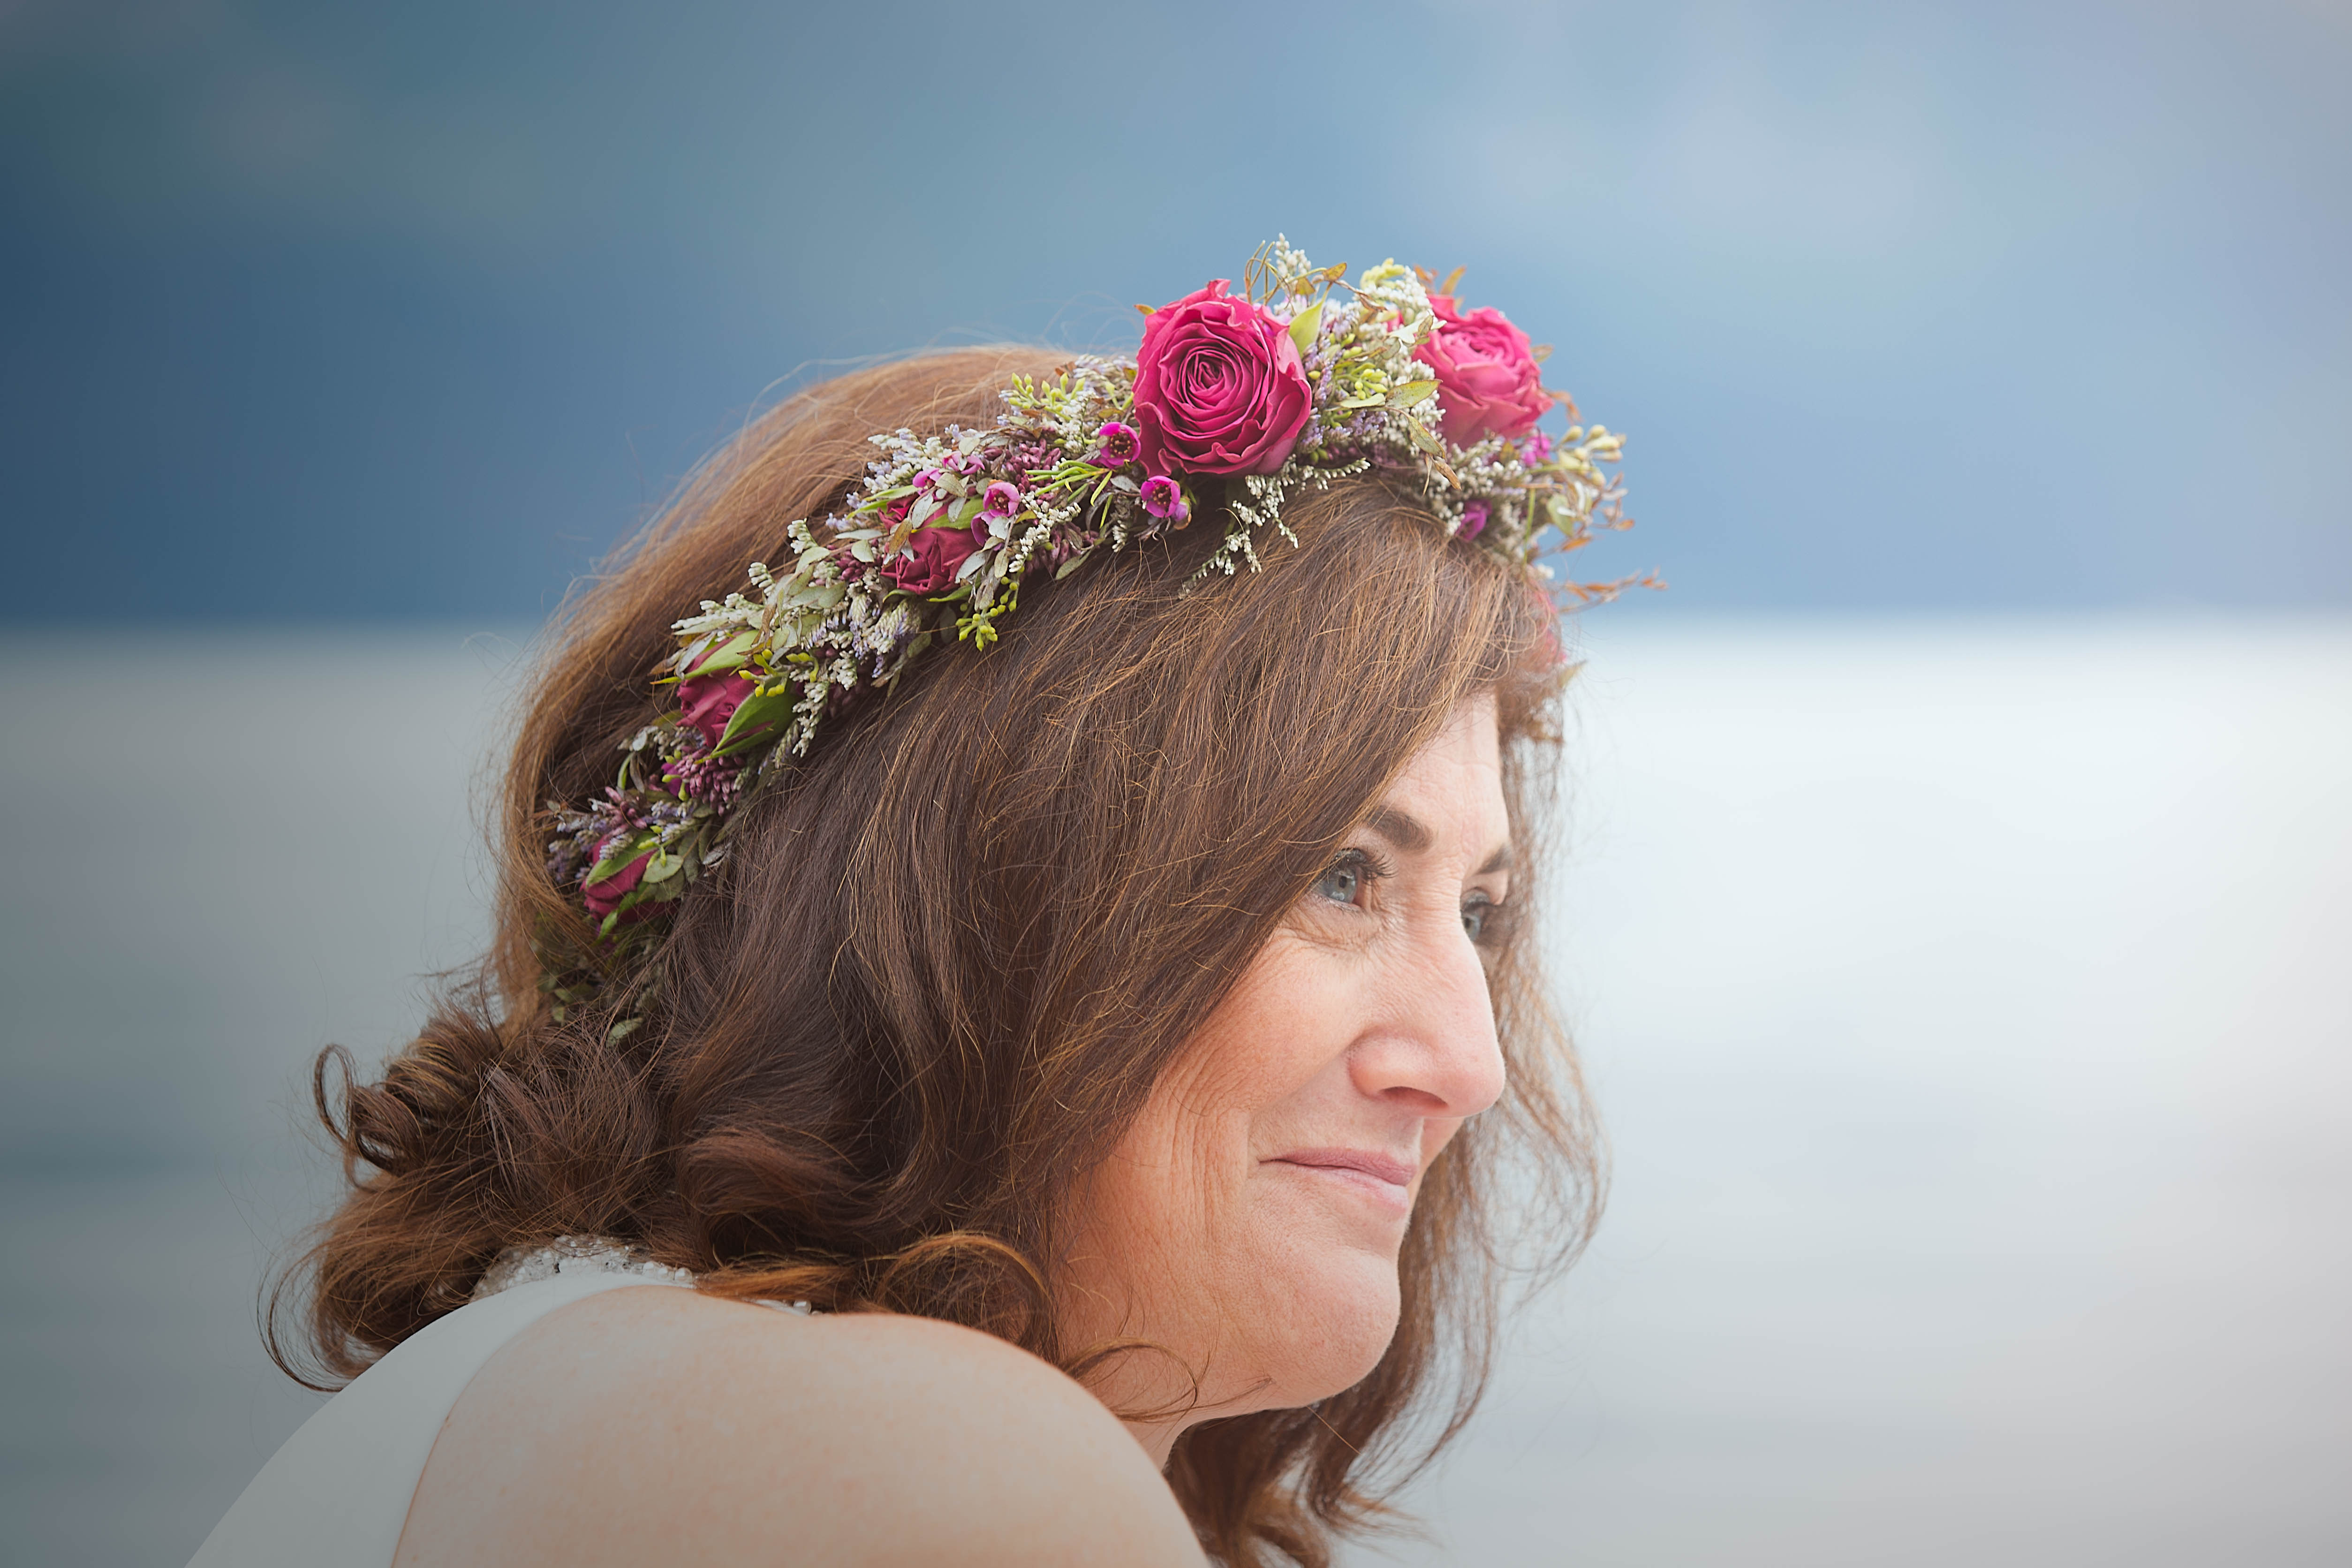 Lovely bridal flower crown with purple garden spray roses   designed by Natasha Price of Paper Peony and photo by Love Adventured